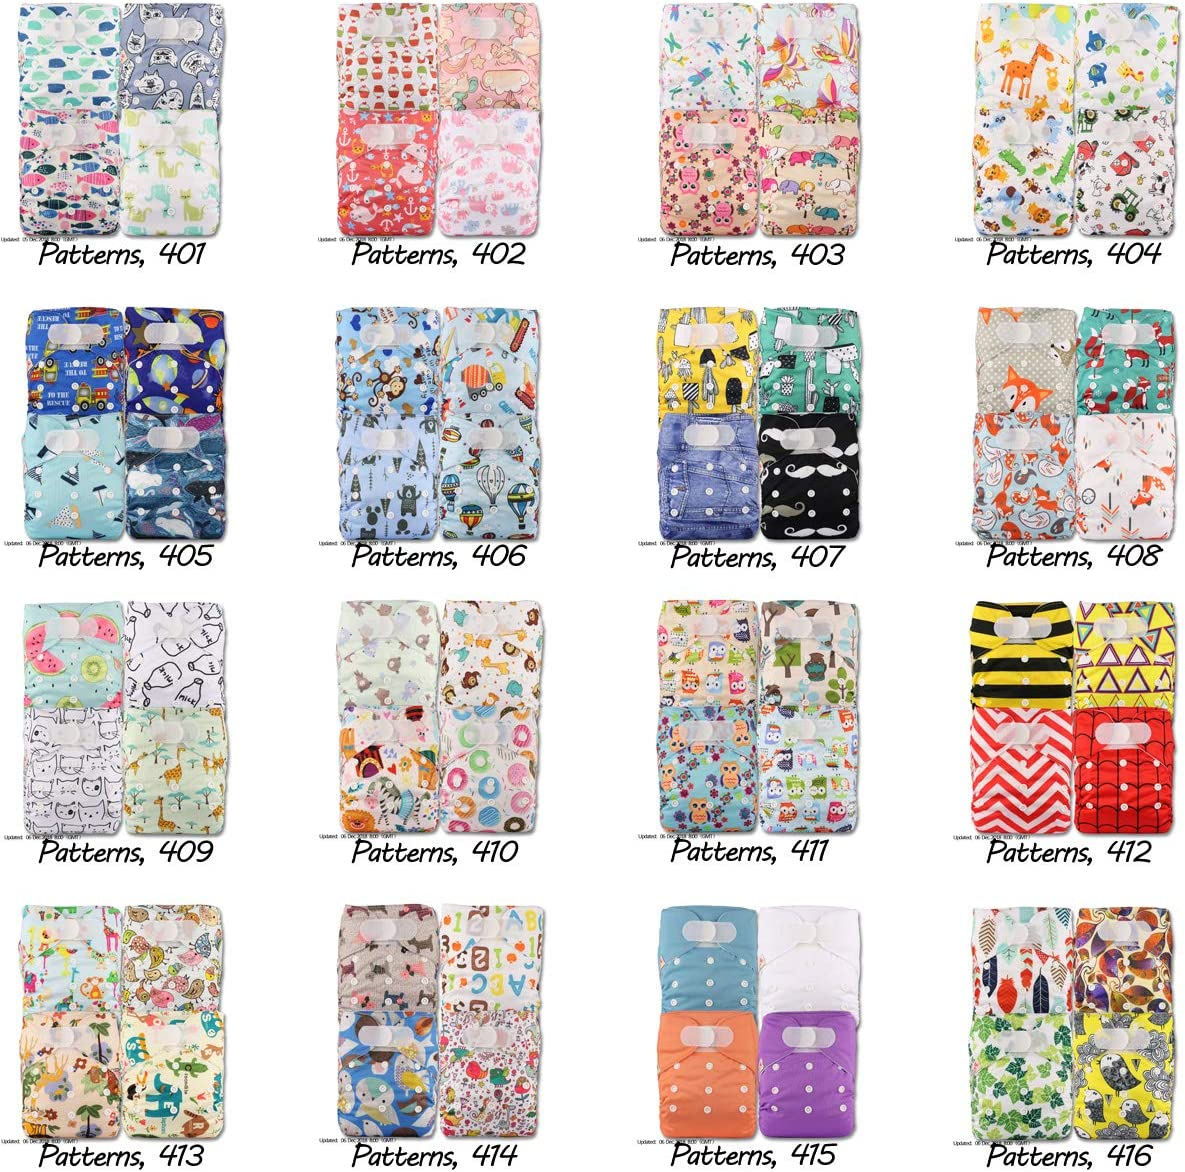 Fastener: Hook-Loop with 8 Bamboo Inserts Littles /& Bloomz Set of 4 Reusable Pocket Cloth Nappy Patterns 418